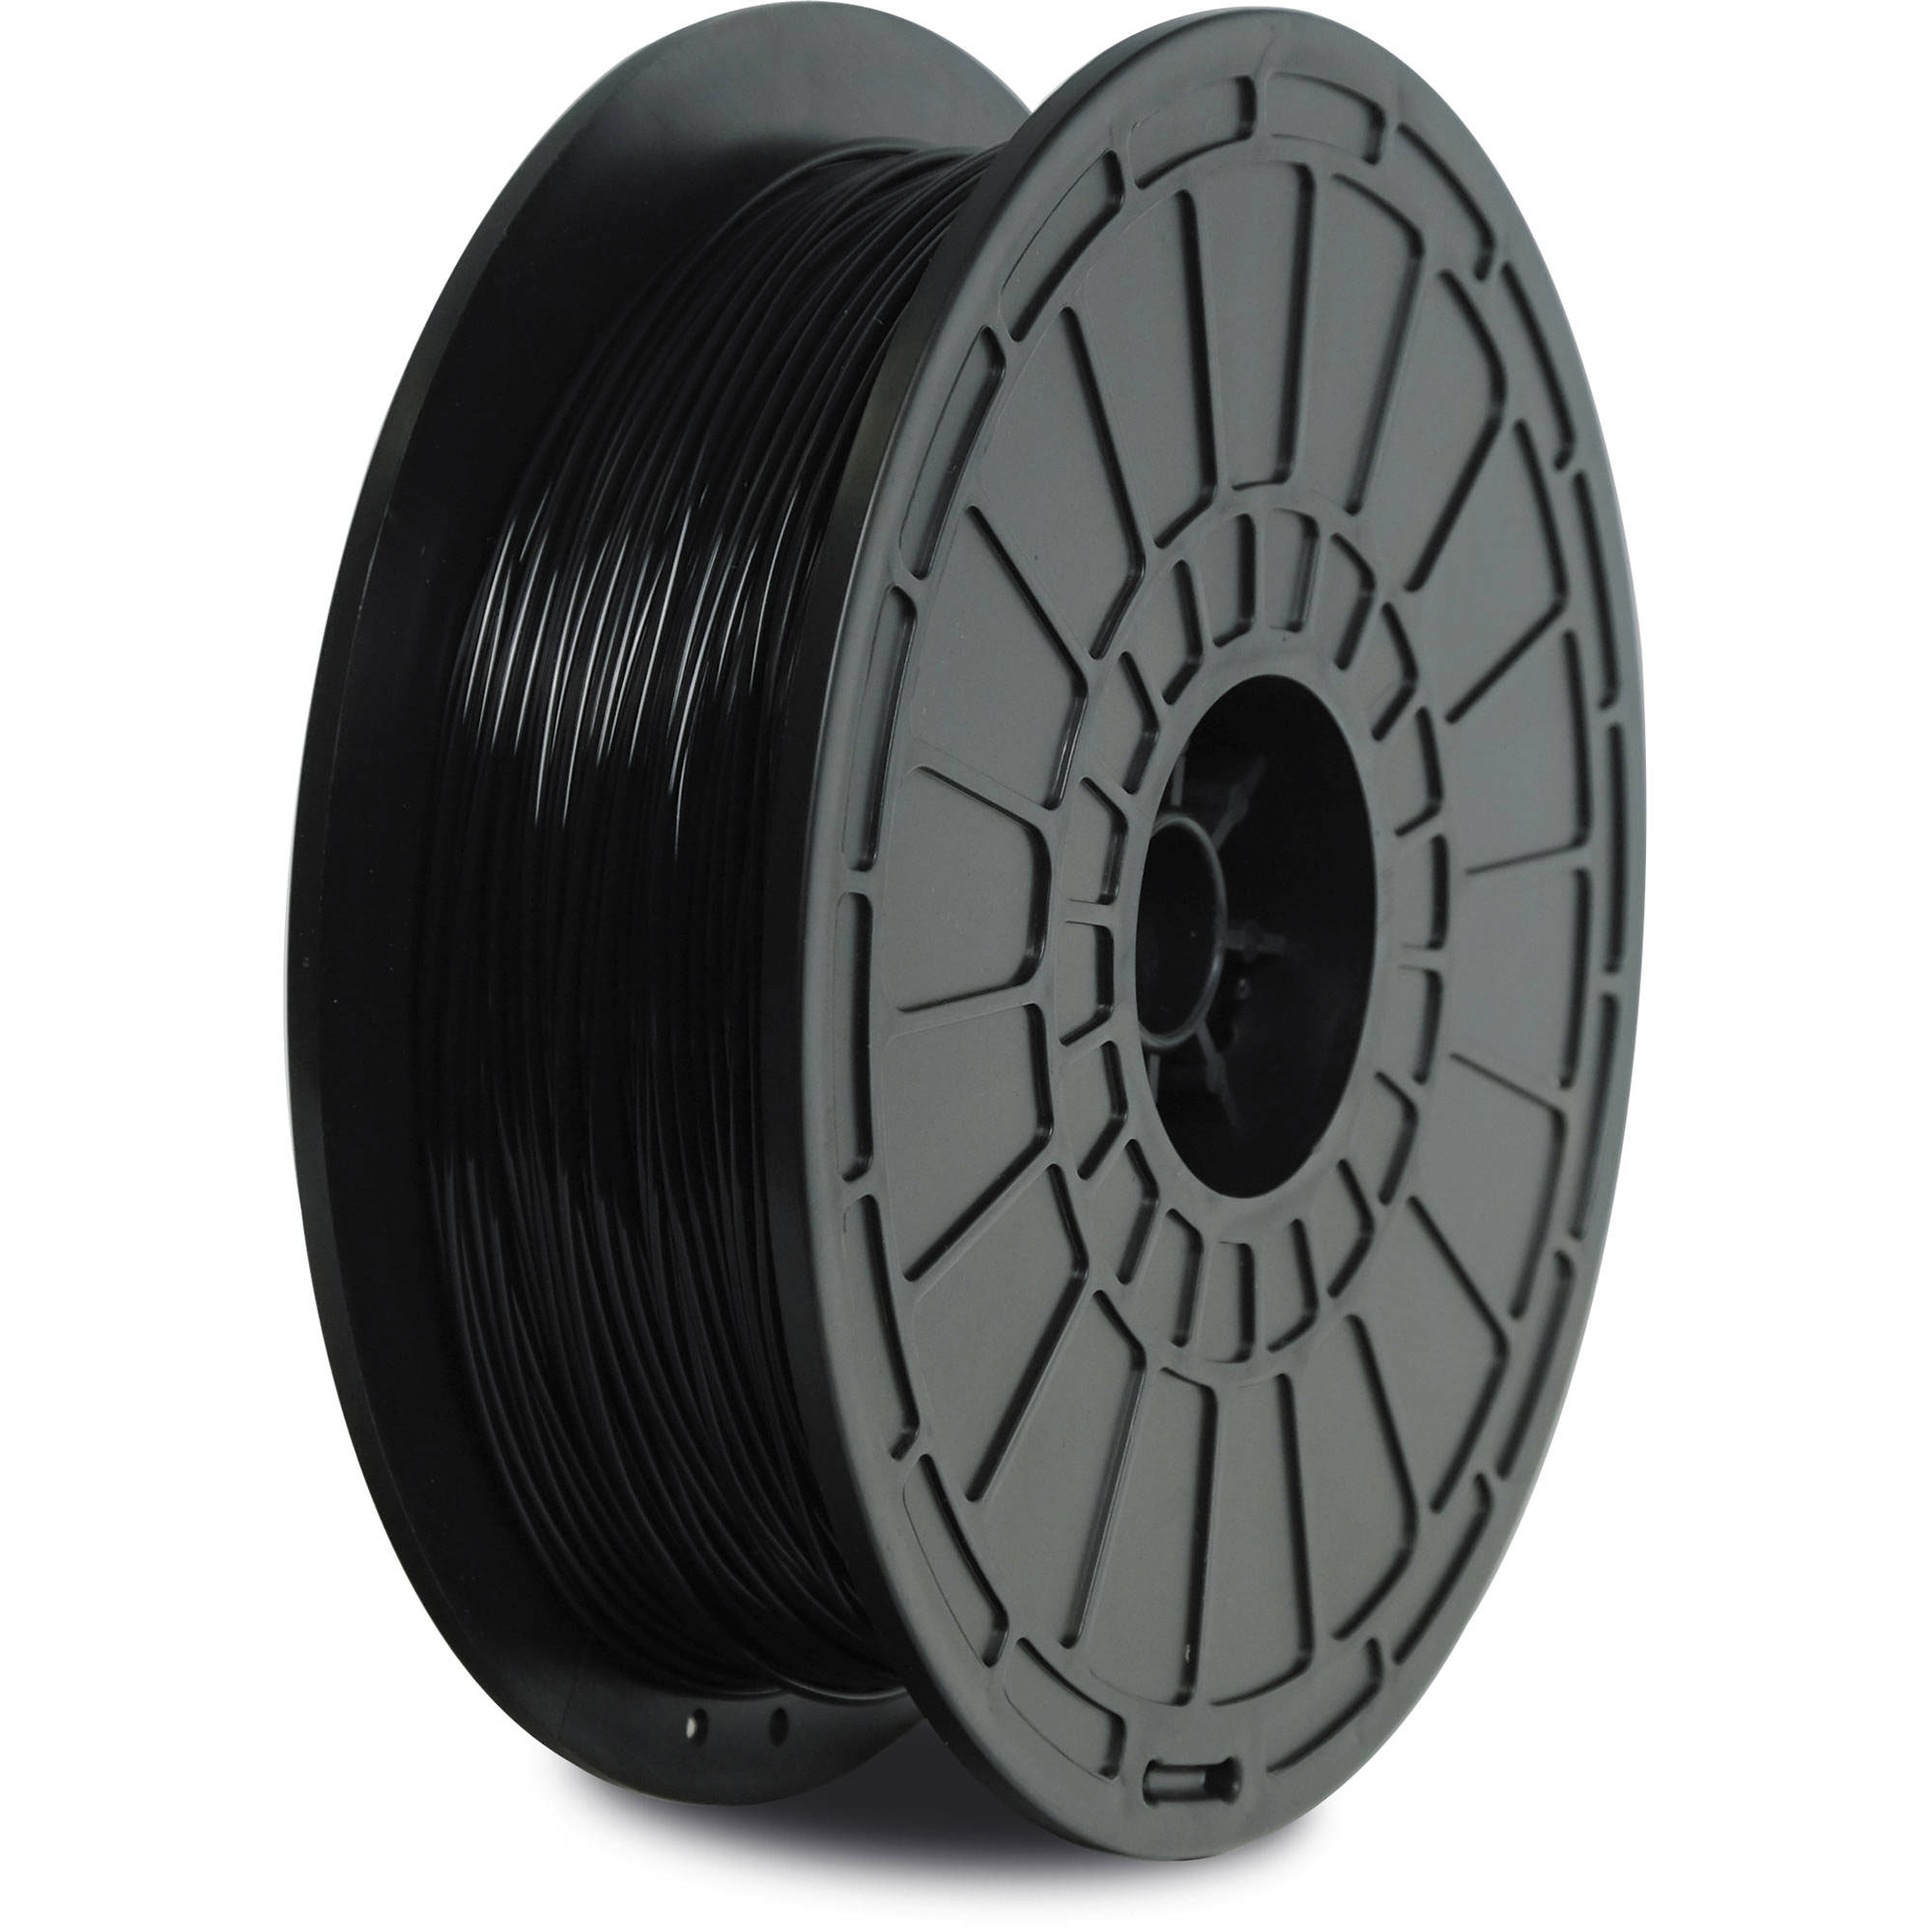 1.75mm Dreamer Series ABS Filament 1.5 lb  Black